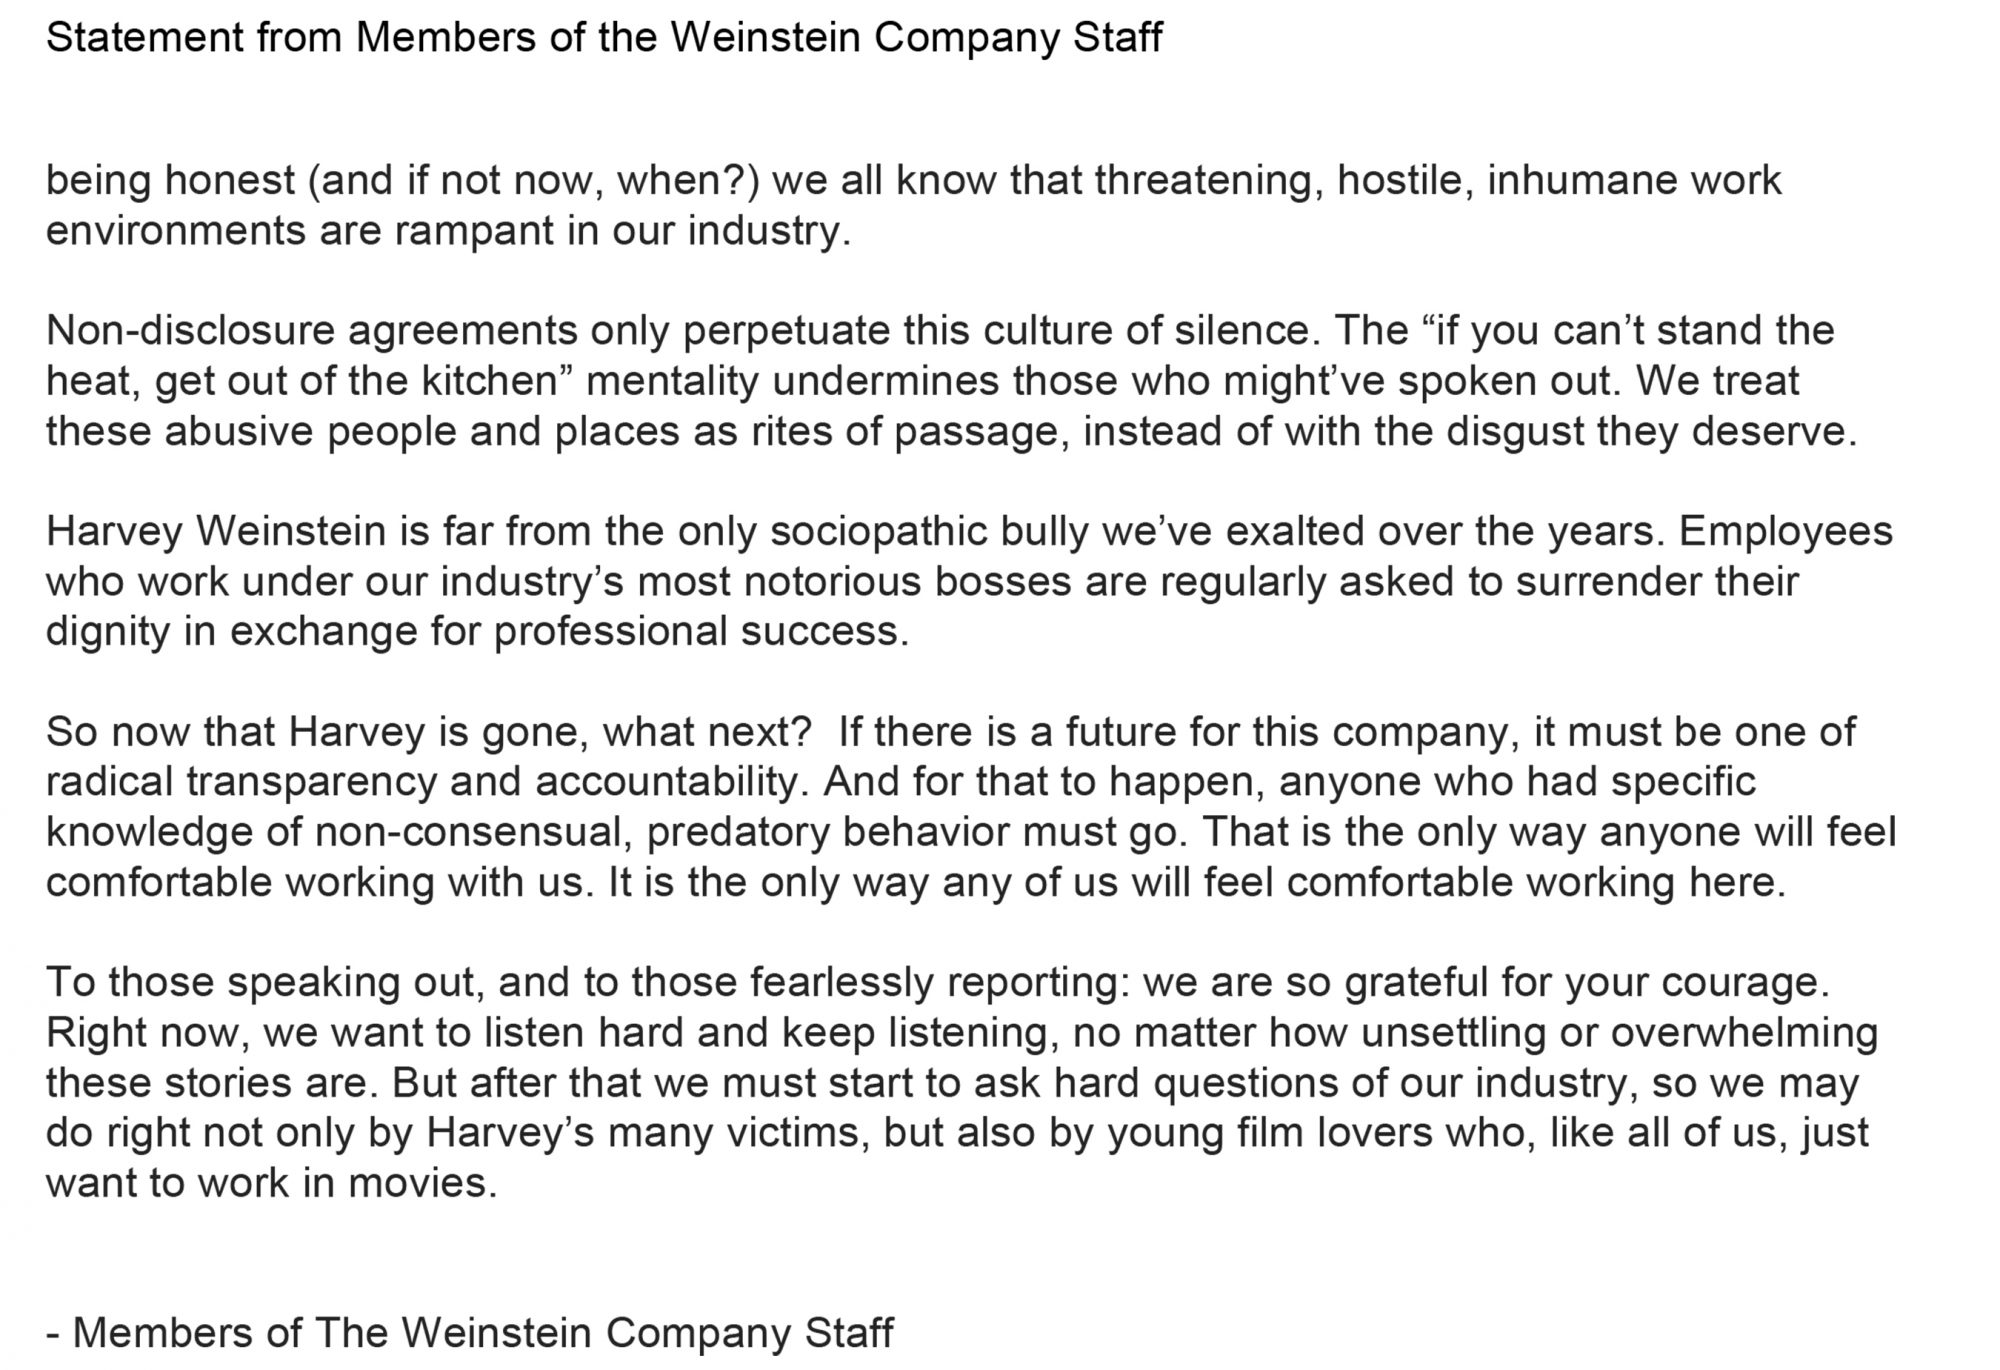 Microsoft Word - Statement from Members of the Weinstein Company